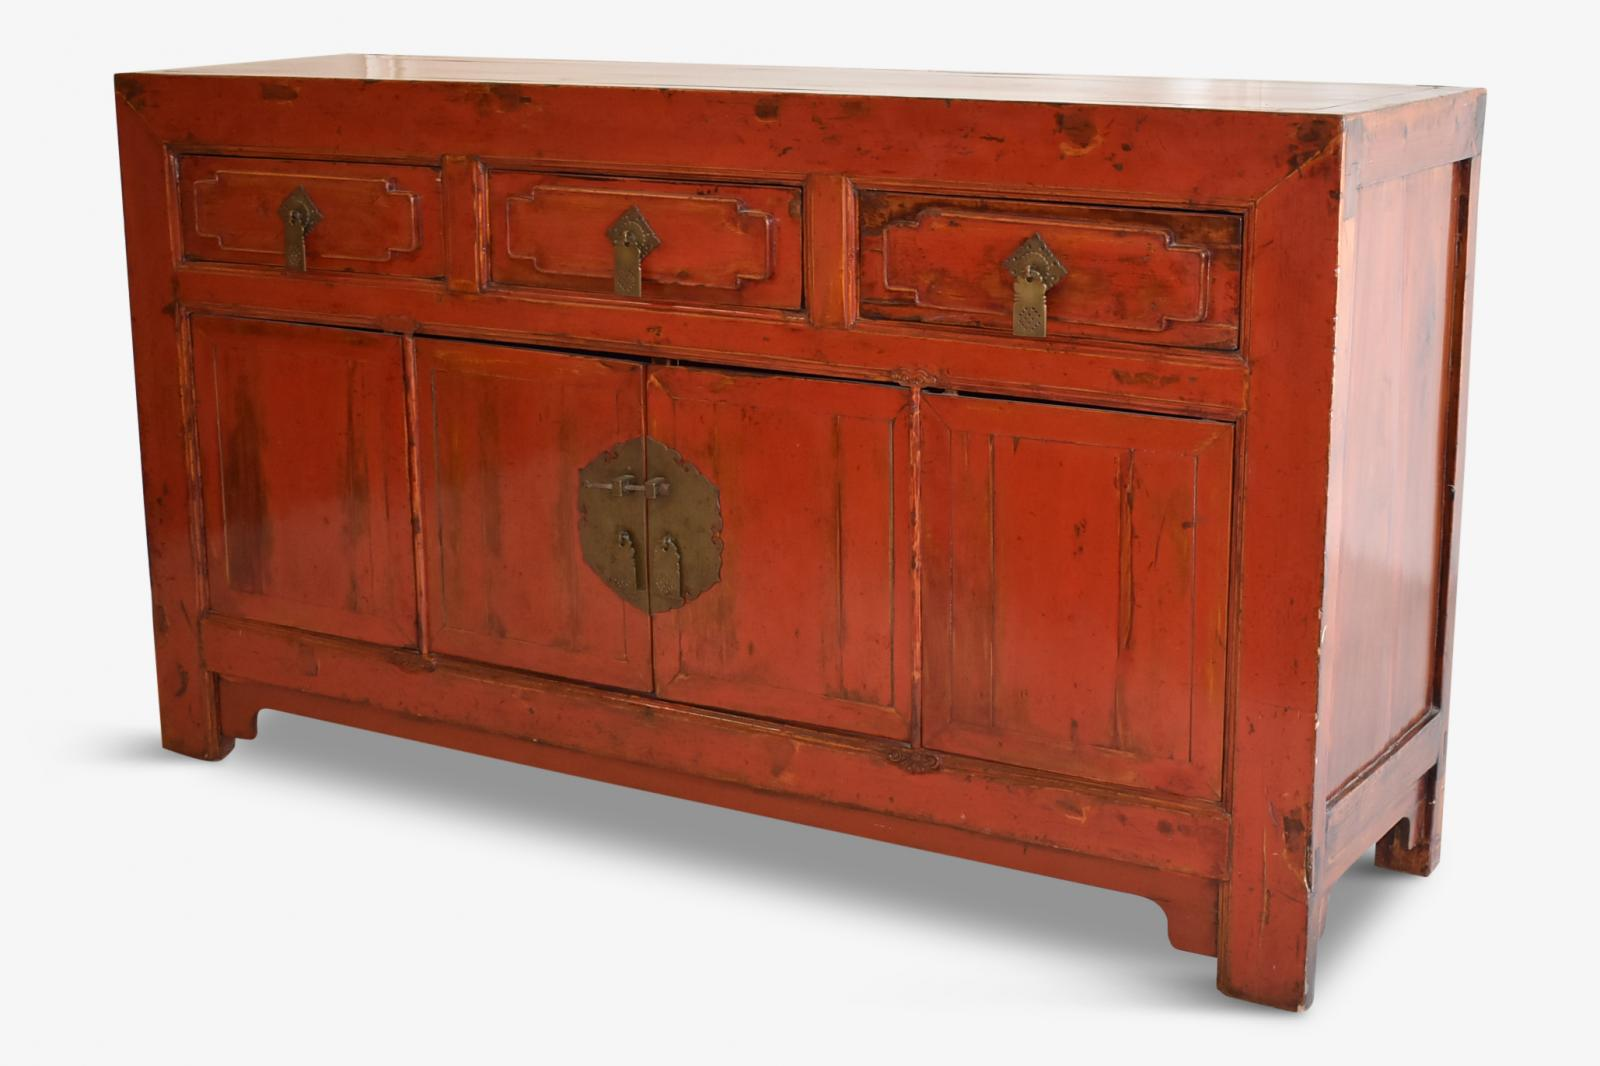 download wallpaper pallet furniture 1600x1202 shipping pallet. Perfect Pallet Download Wallpaper Pallet Furniture 1600x1202 Shipping Pallet Red  Lacquered Furniture With Furniture Download Wallpaper To Pallet Shipping